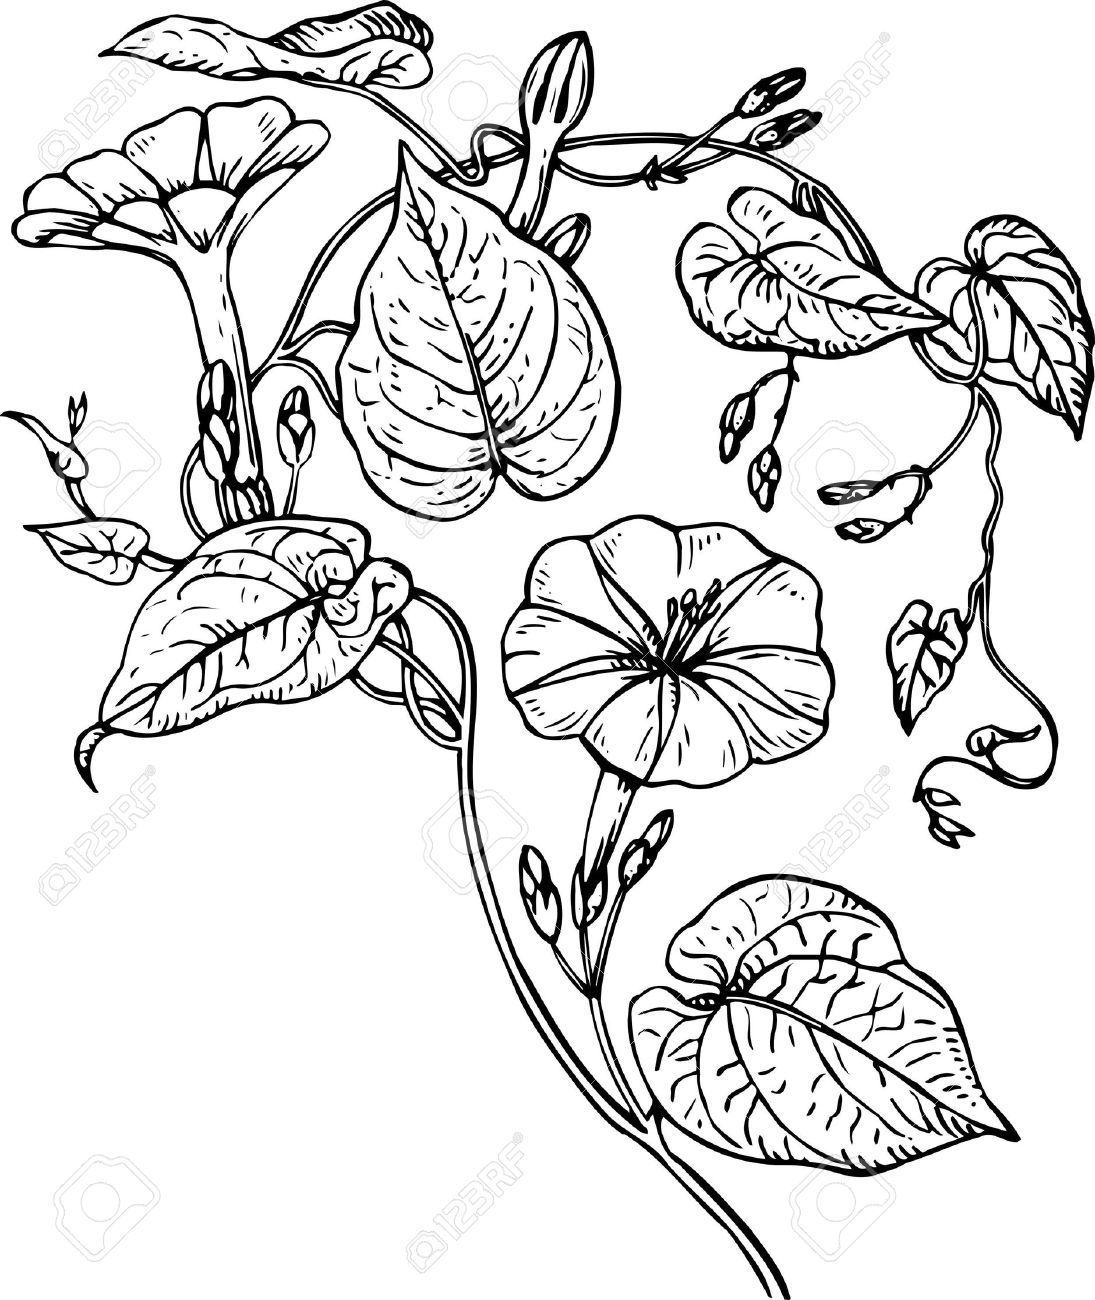 morning glory vine drawing Google